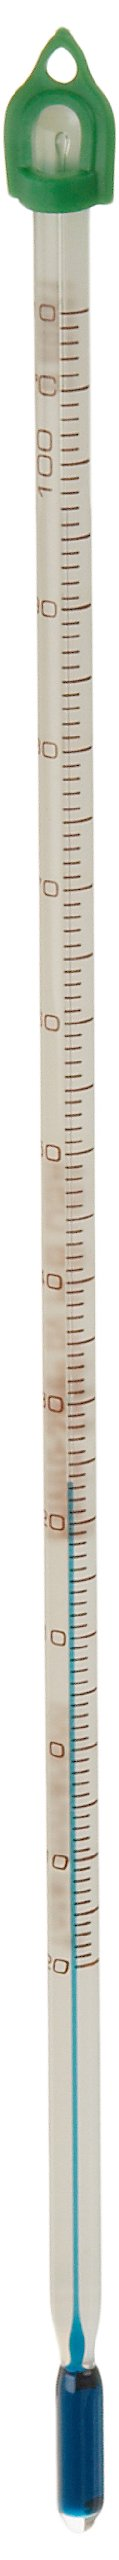 Enviro-Safe Total Immersion Spirit Thermometer, -20 to 110 Degrees C, 305mm Length